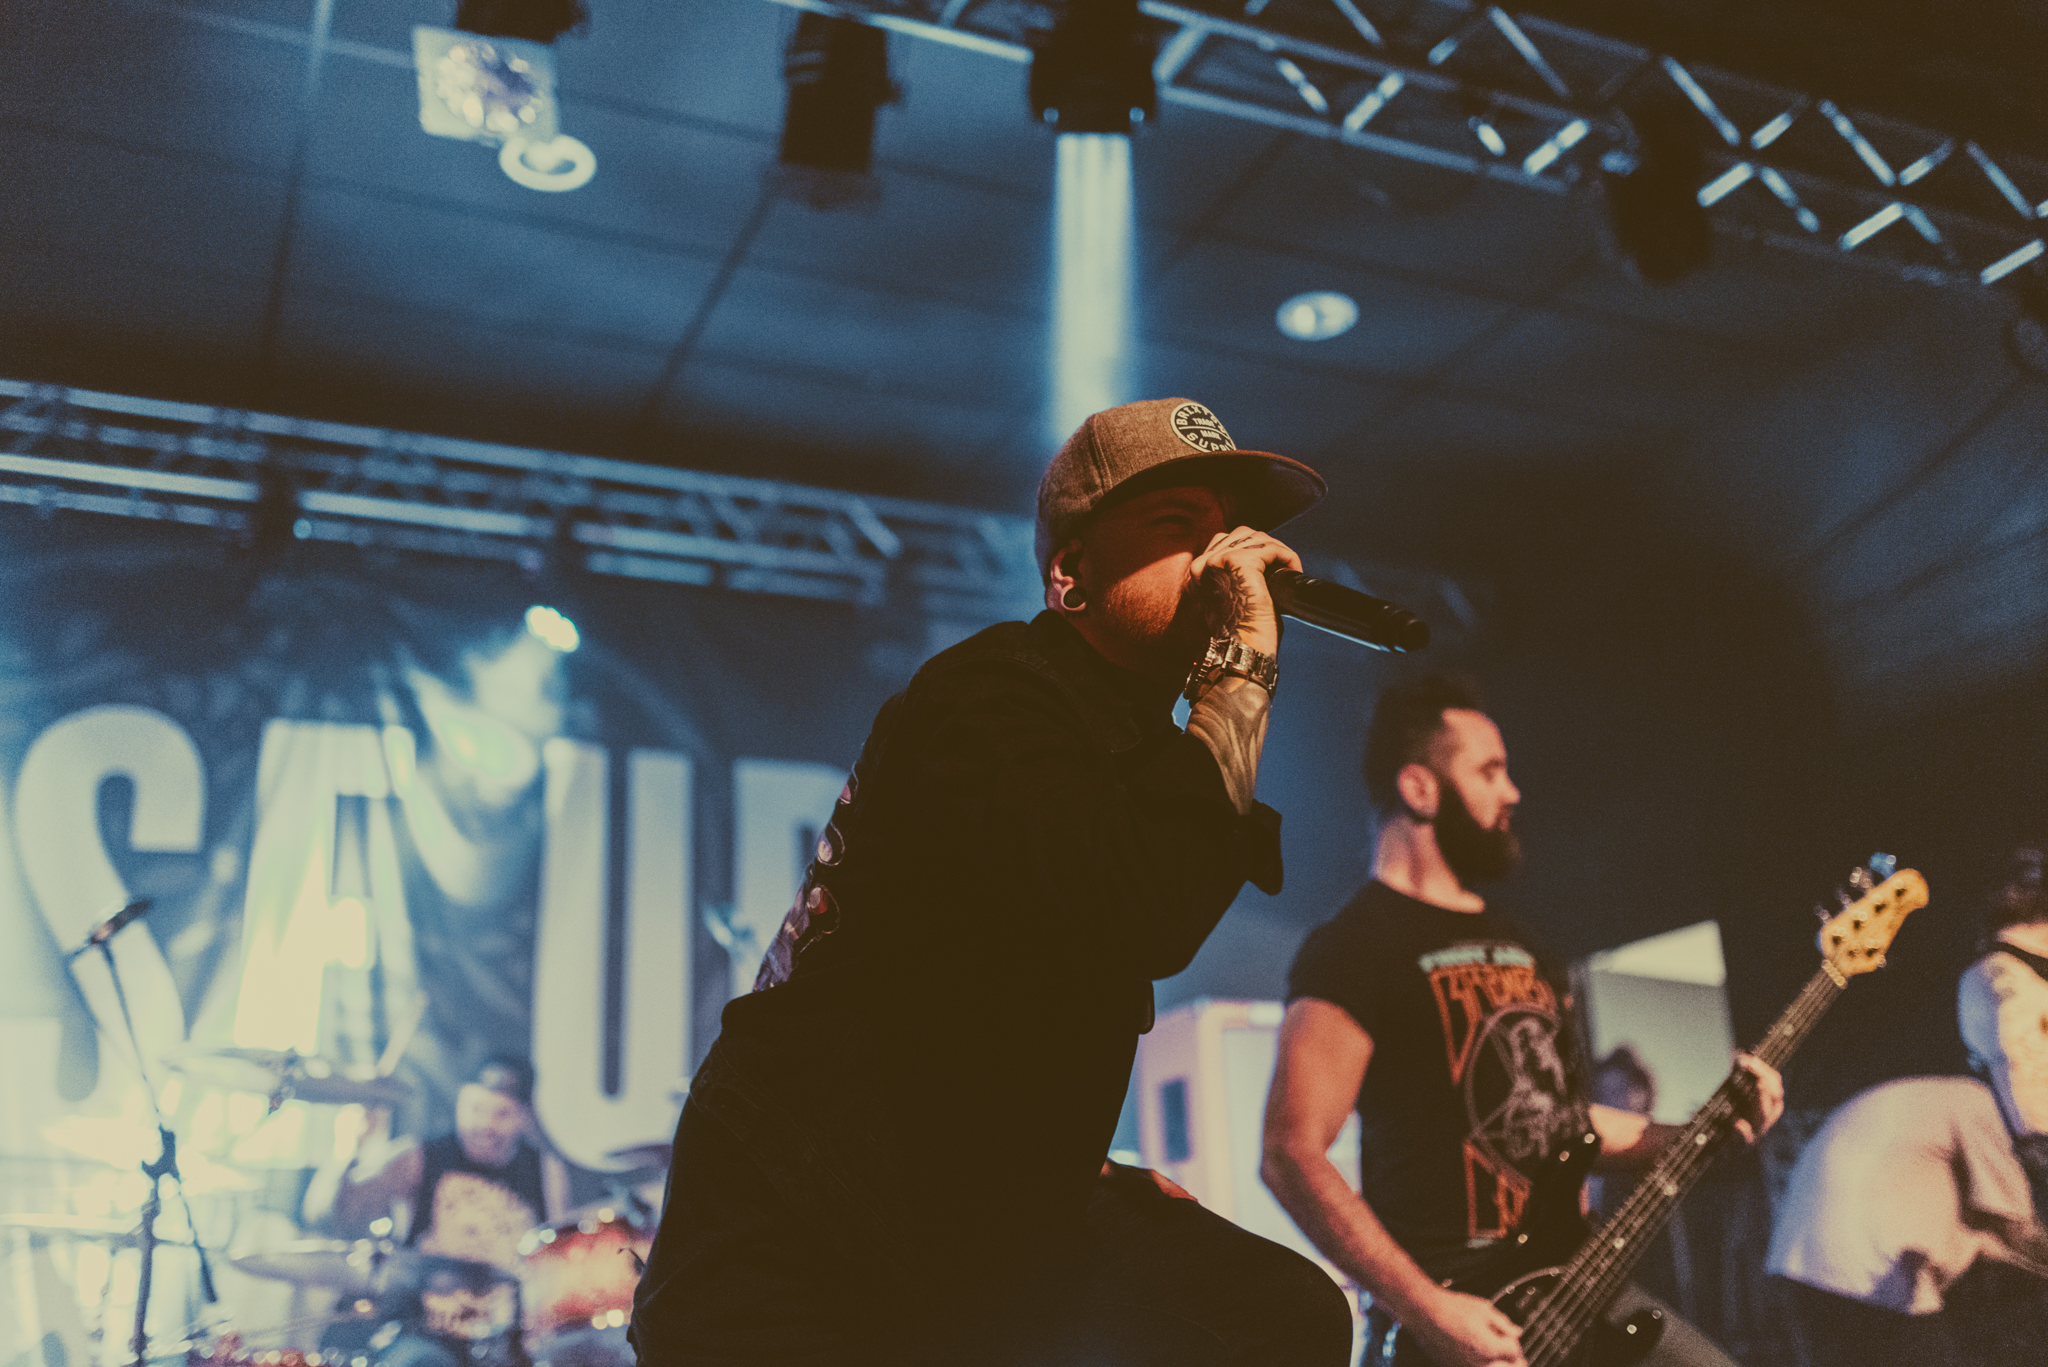 20161117-memphis may fire-7932.jpg